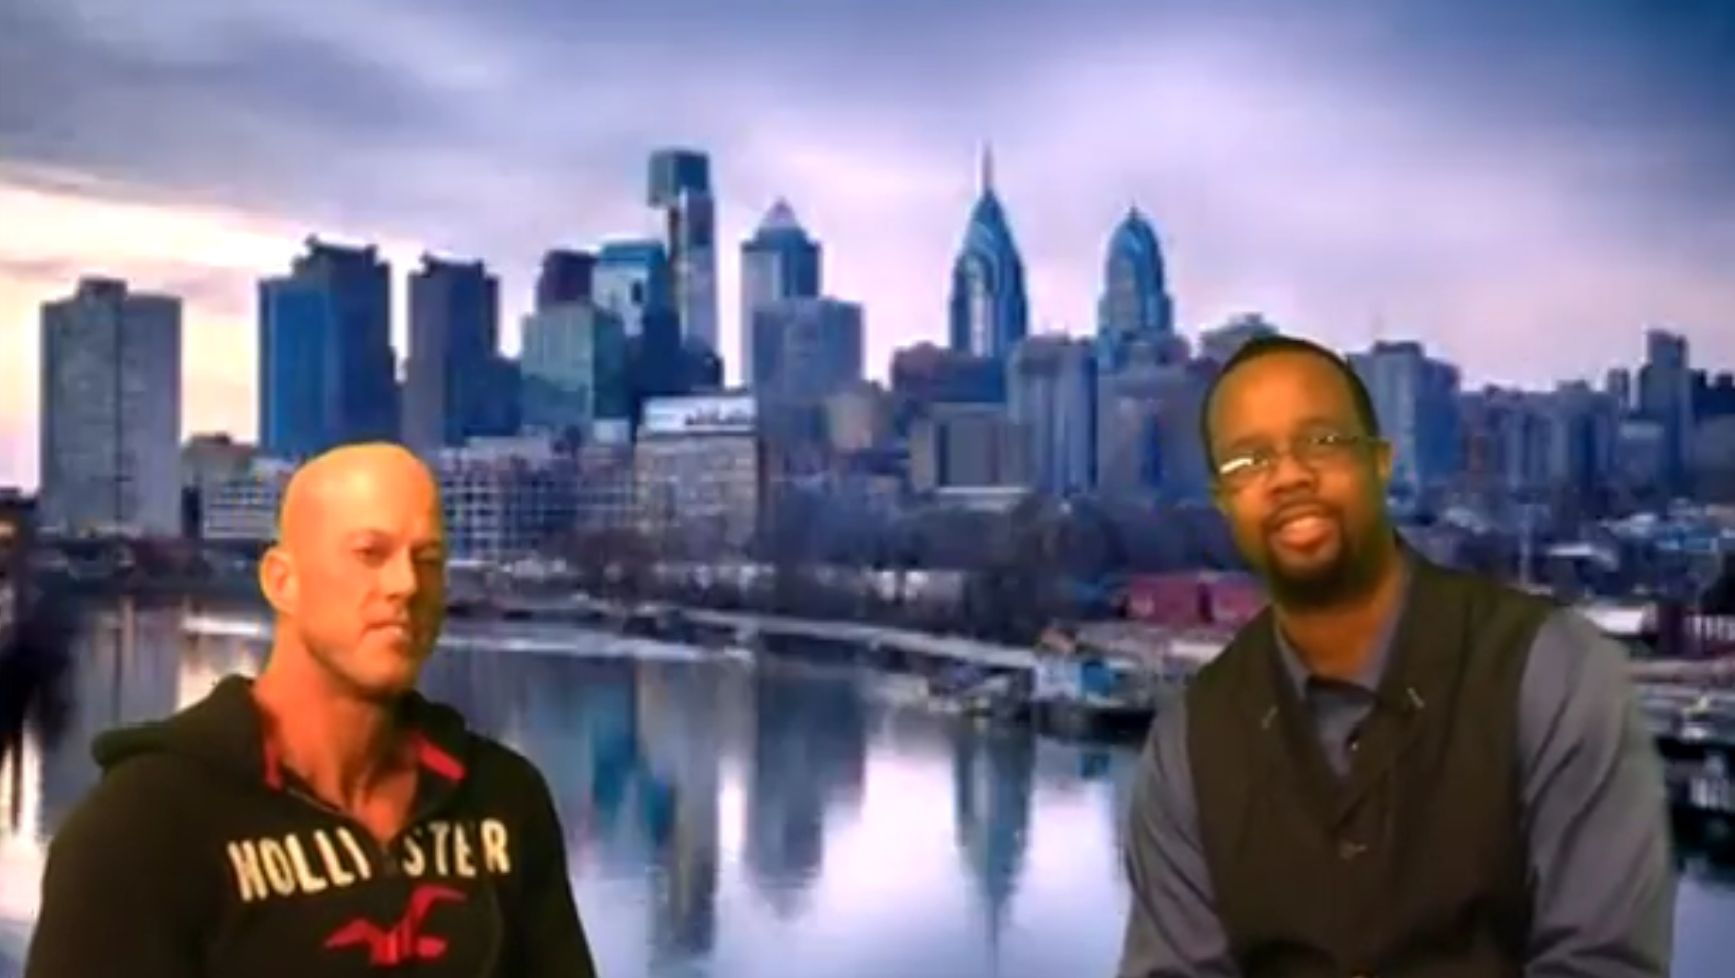 Philly On The Rise TV Interview Model & Actor John Quinlan. #JohnQuinlan